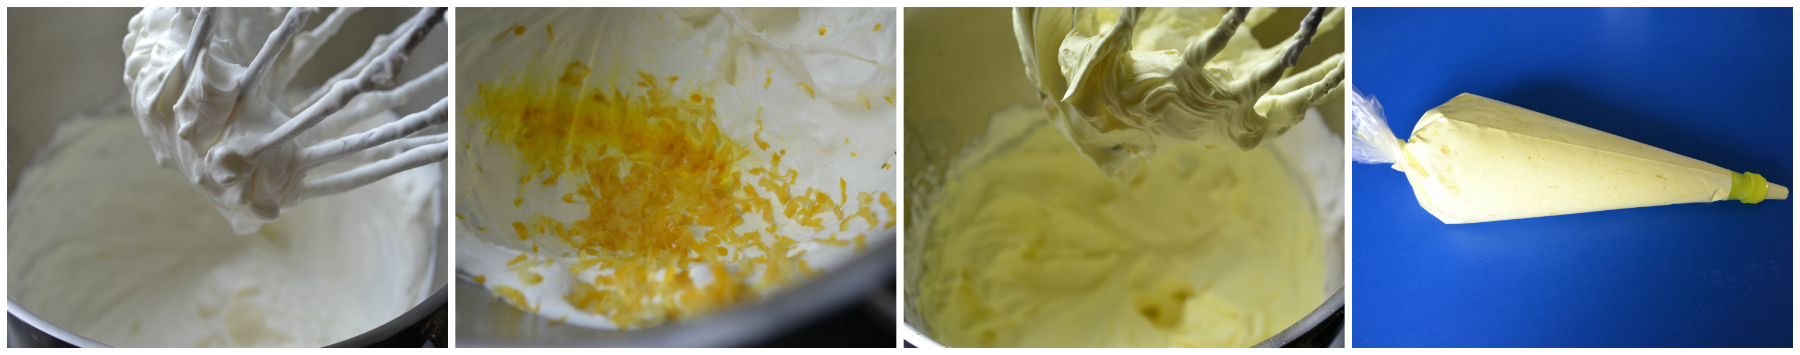 chantilly-mascarpone-citron-zeste